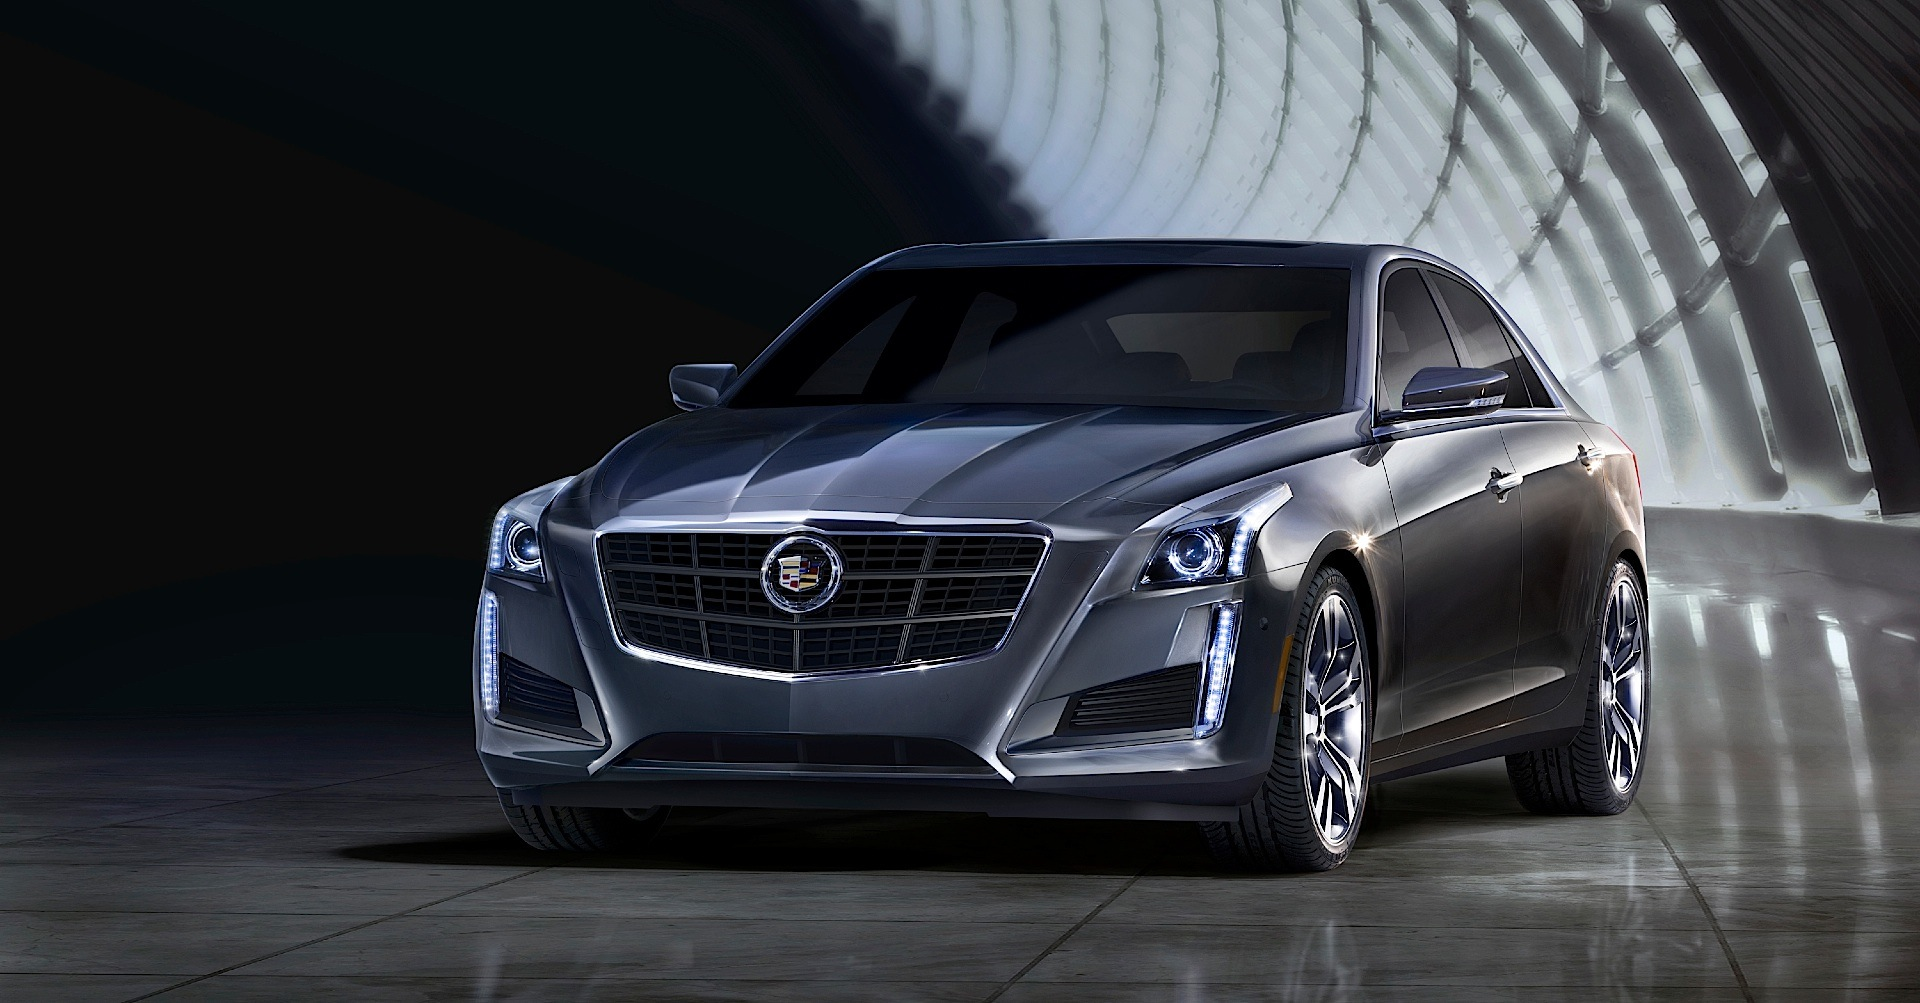 cadillac awd review about naias preview ats the video truth related cars